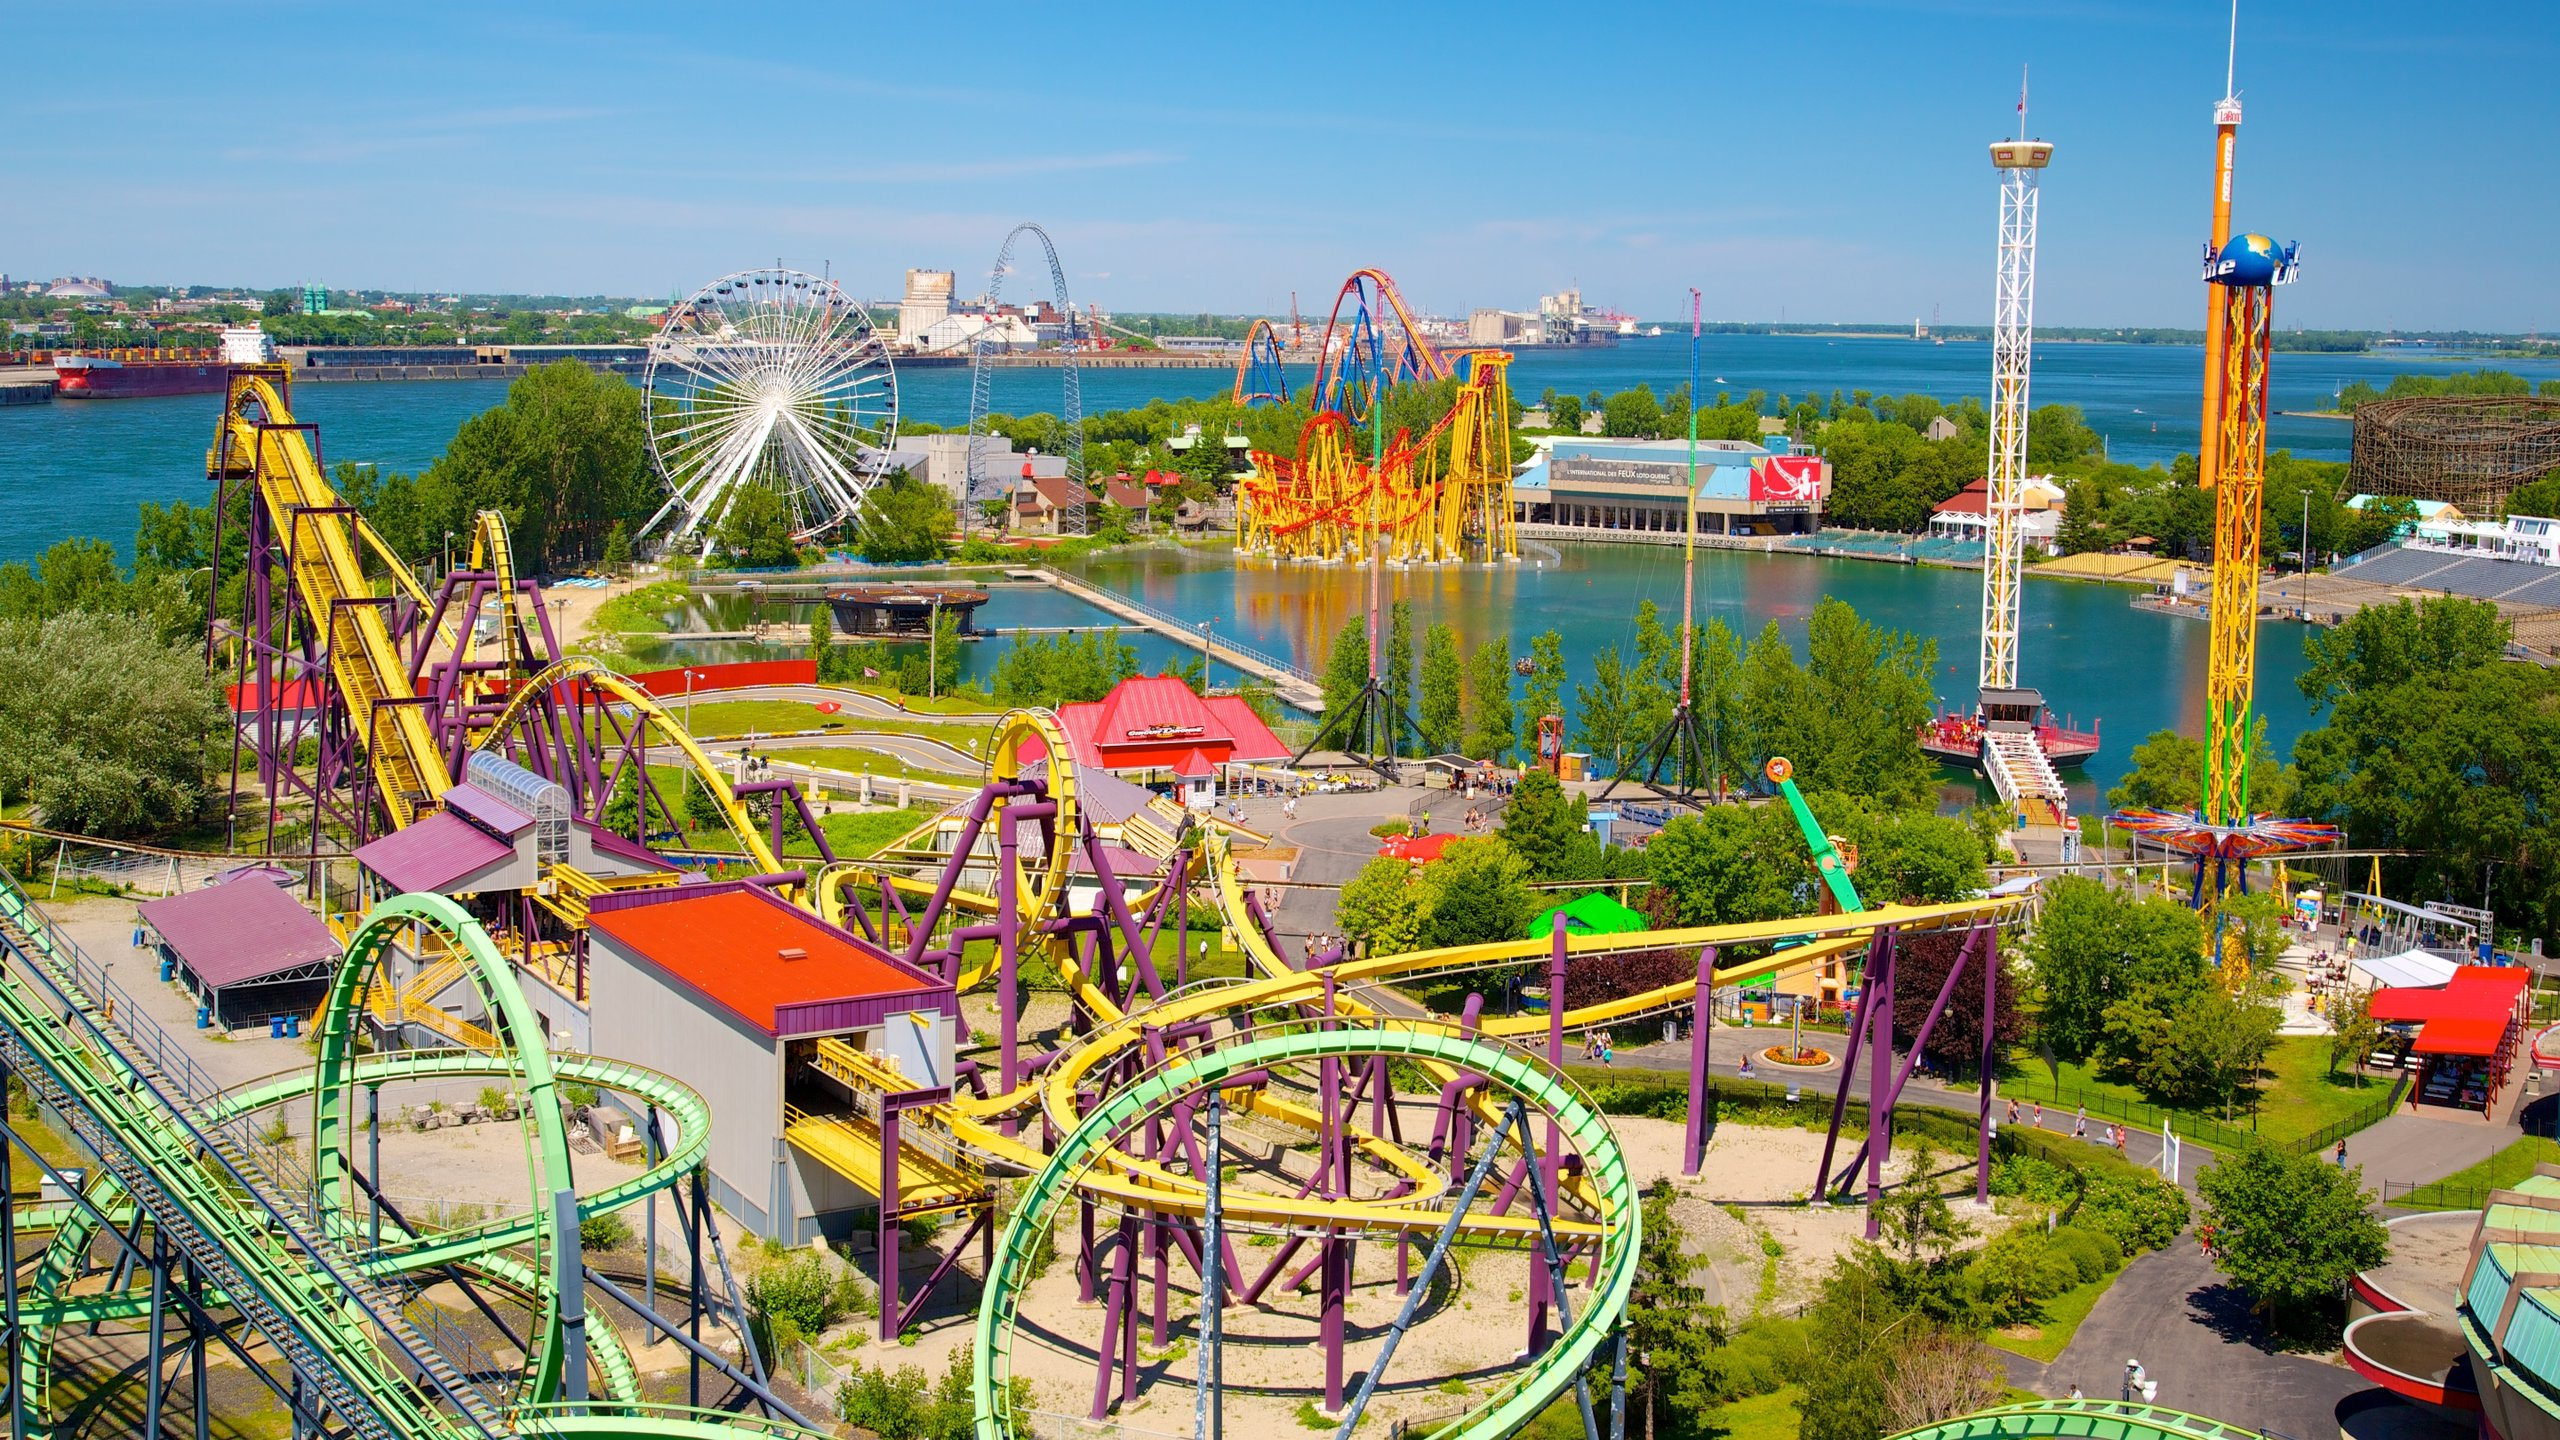 Montreal's favorite amusement park lights up the night sky in summertime, and has some of the highest and fastest roller coasters in Canada.